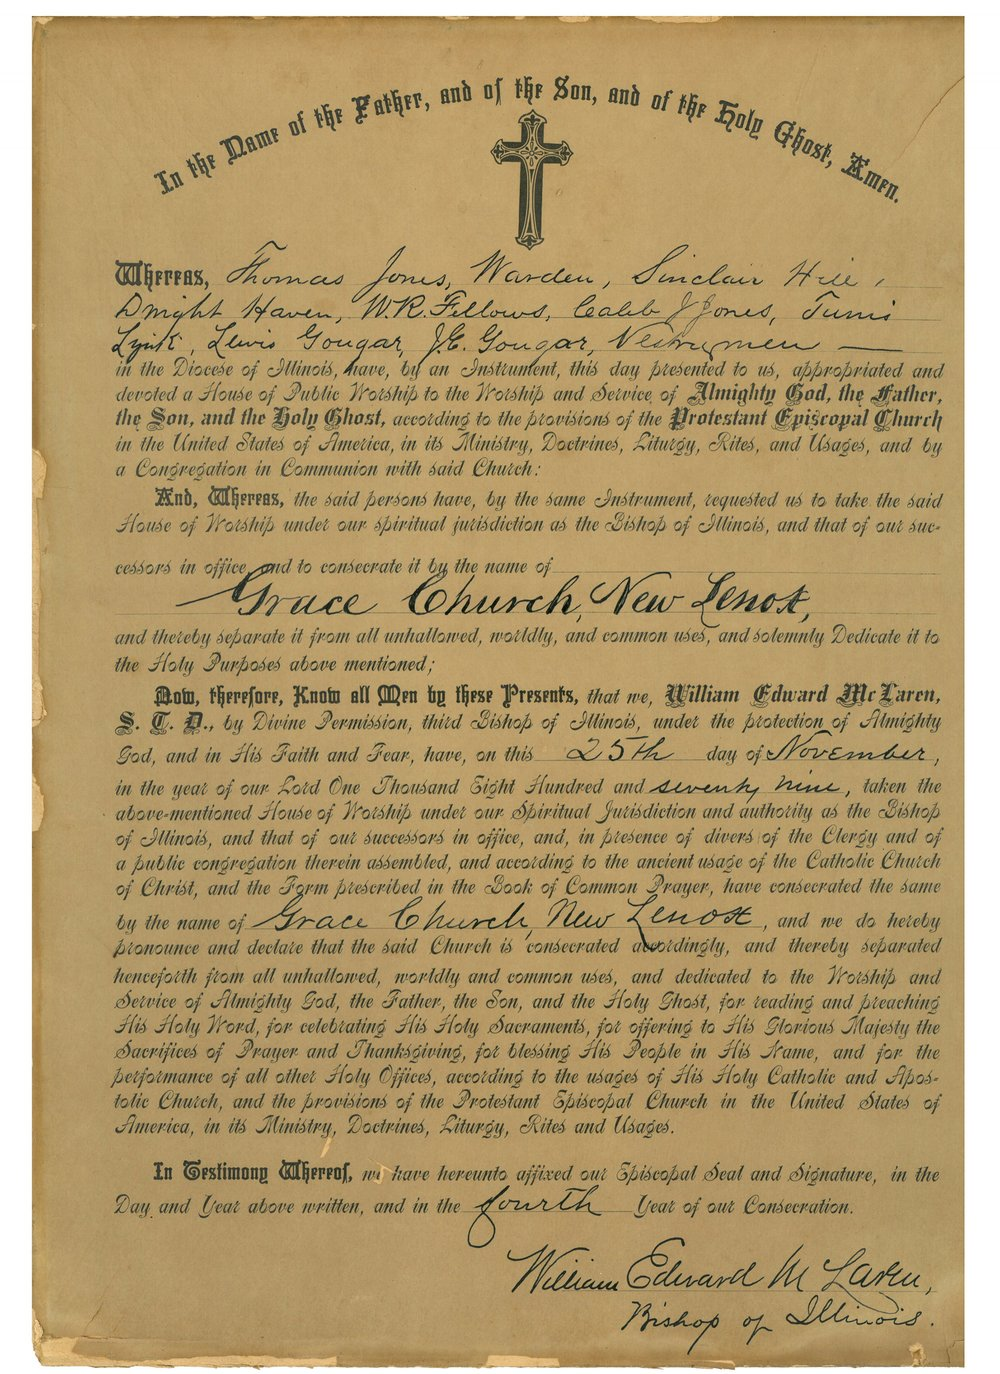 The original proclamation and deed from then-Diocese of Illinois, signed by Bishop William McLaren, November 25, 1879.